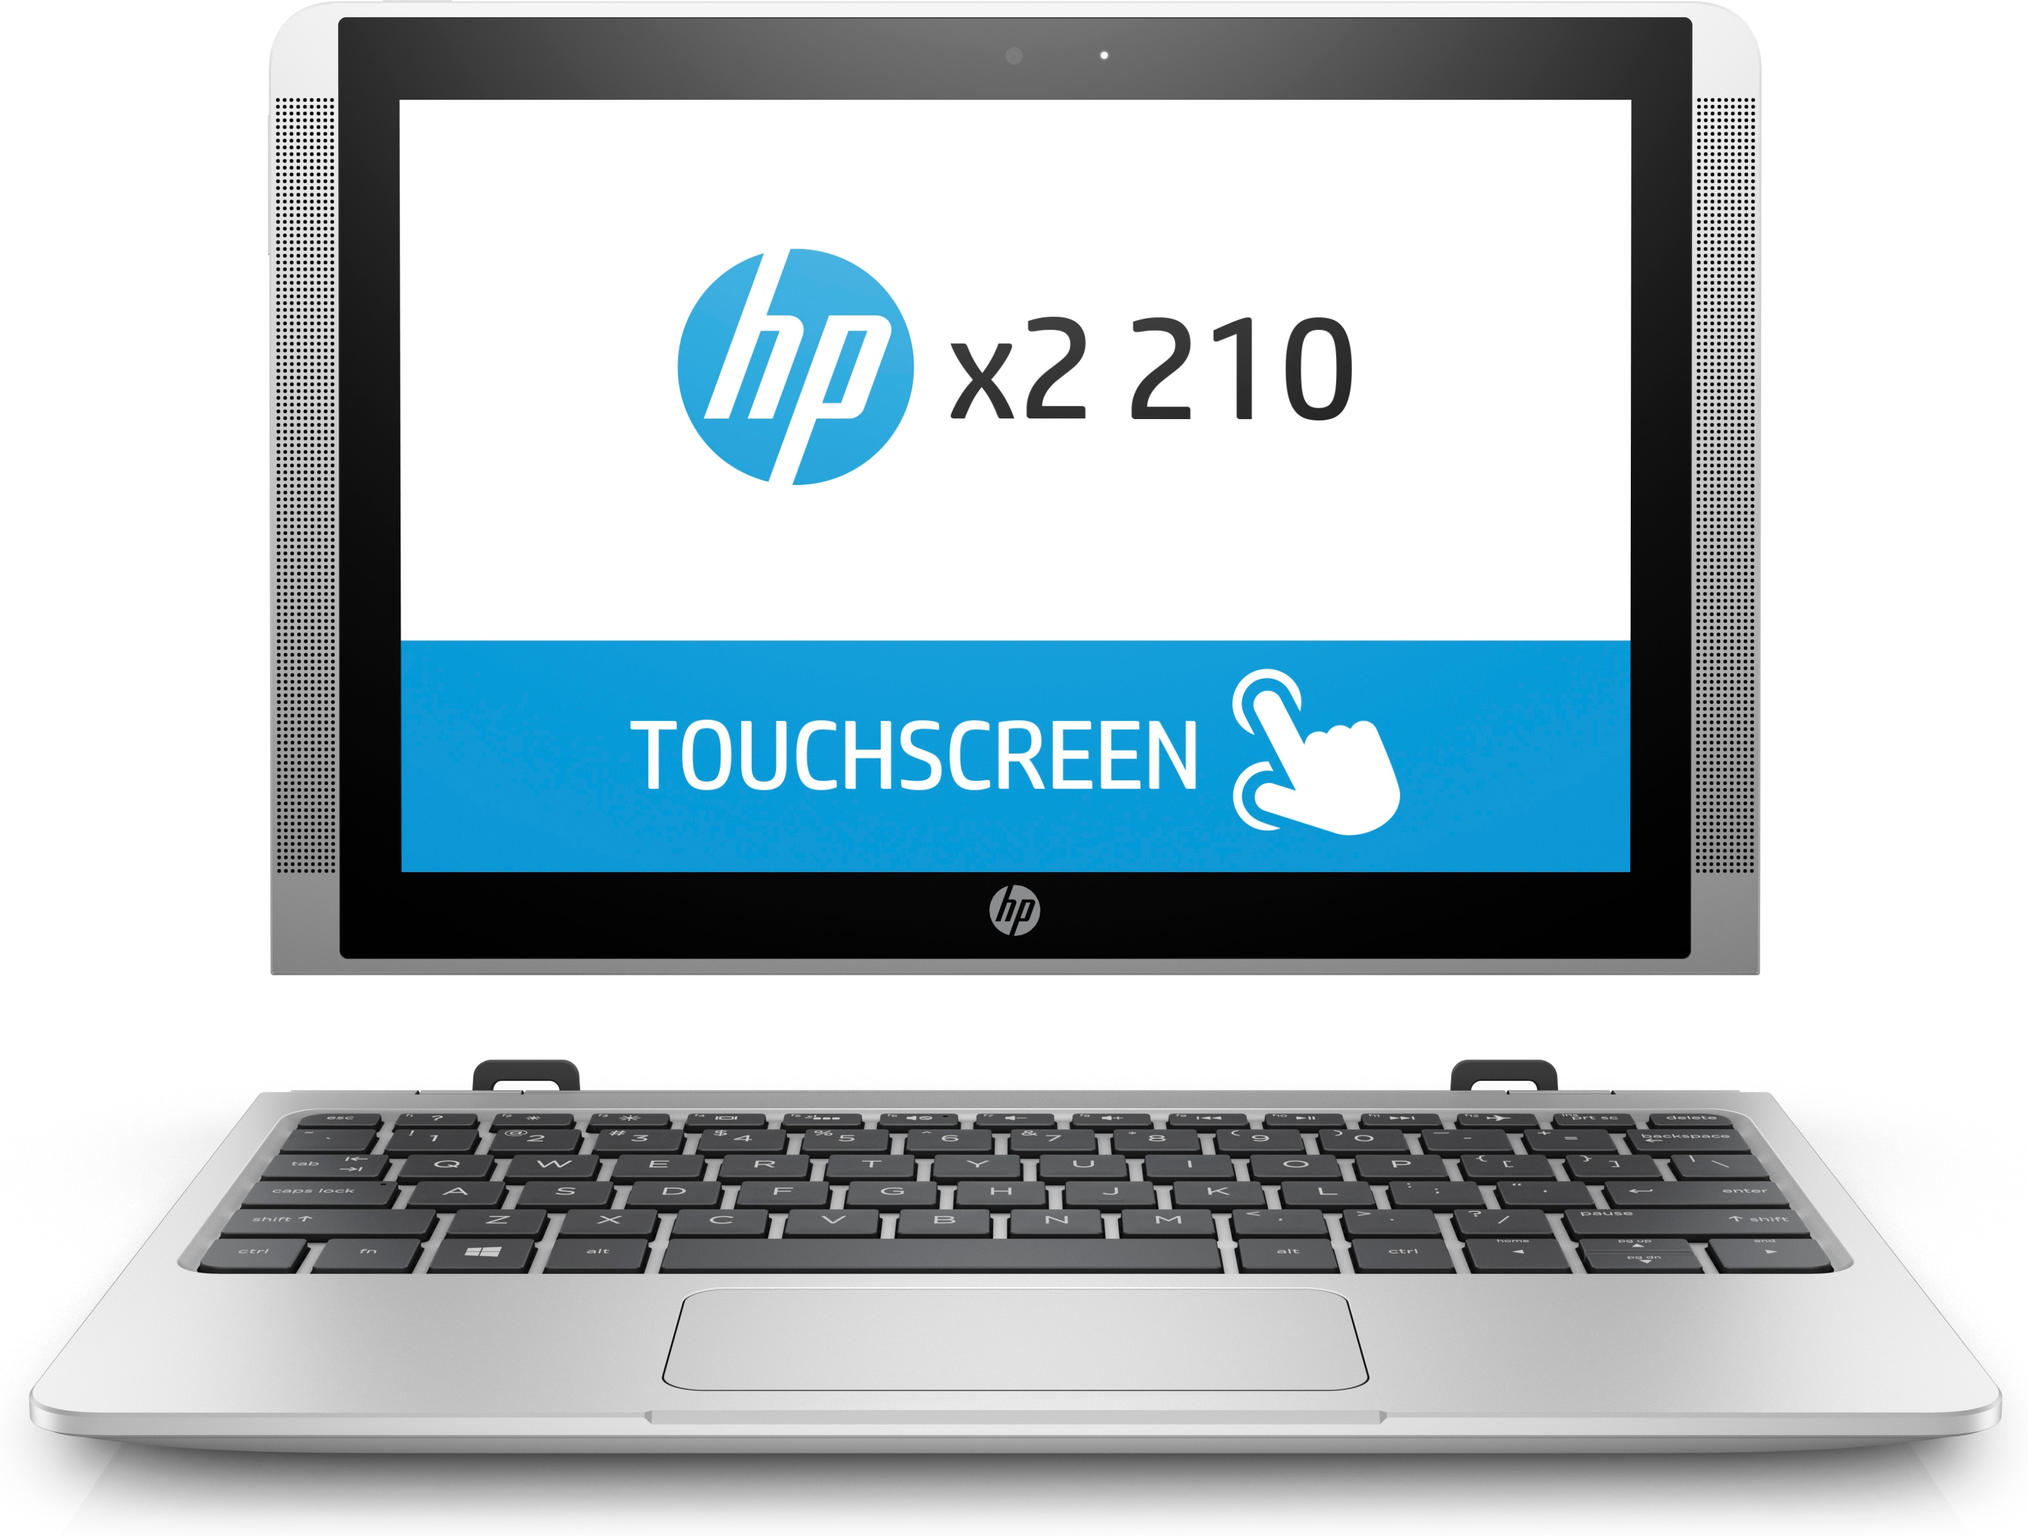 HP x2 210 G2 AZERTY 2-in-1 tablet